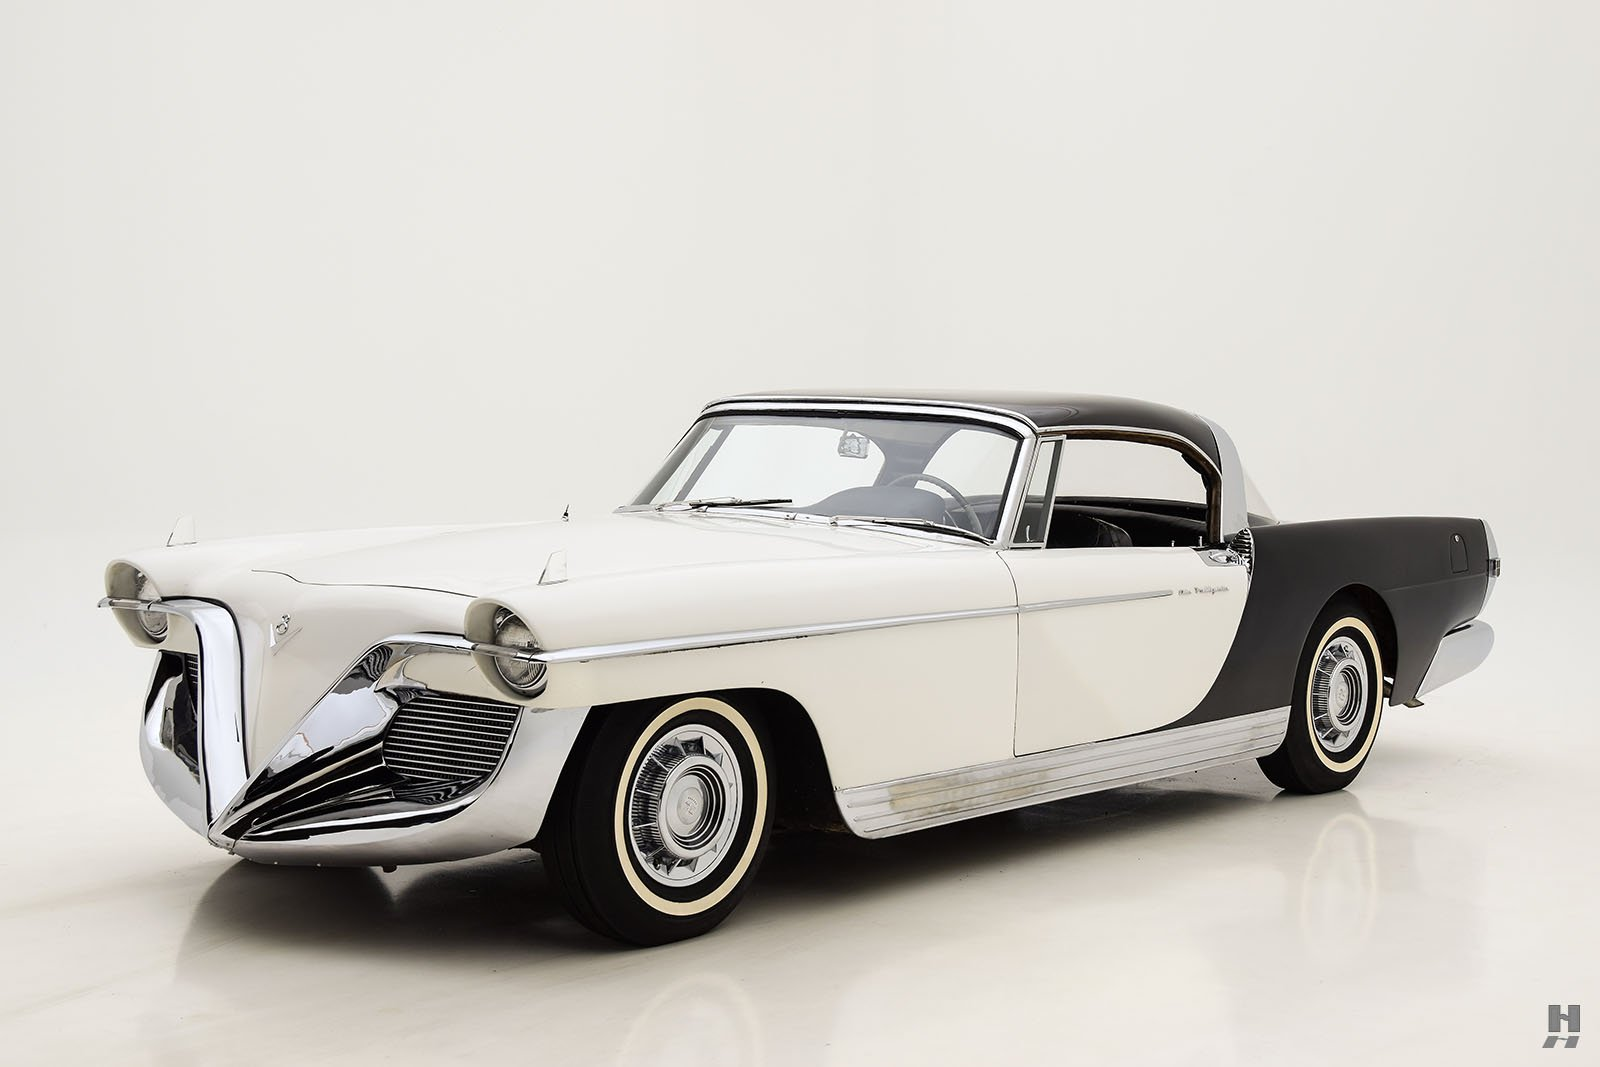 1955 Cadillac Die Valkyrie Concept Car For Sale | Classic ...